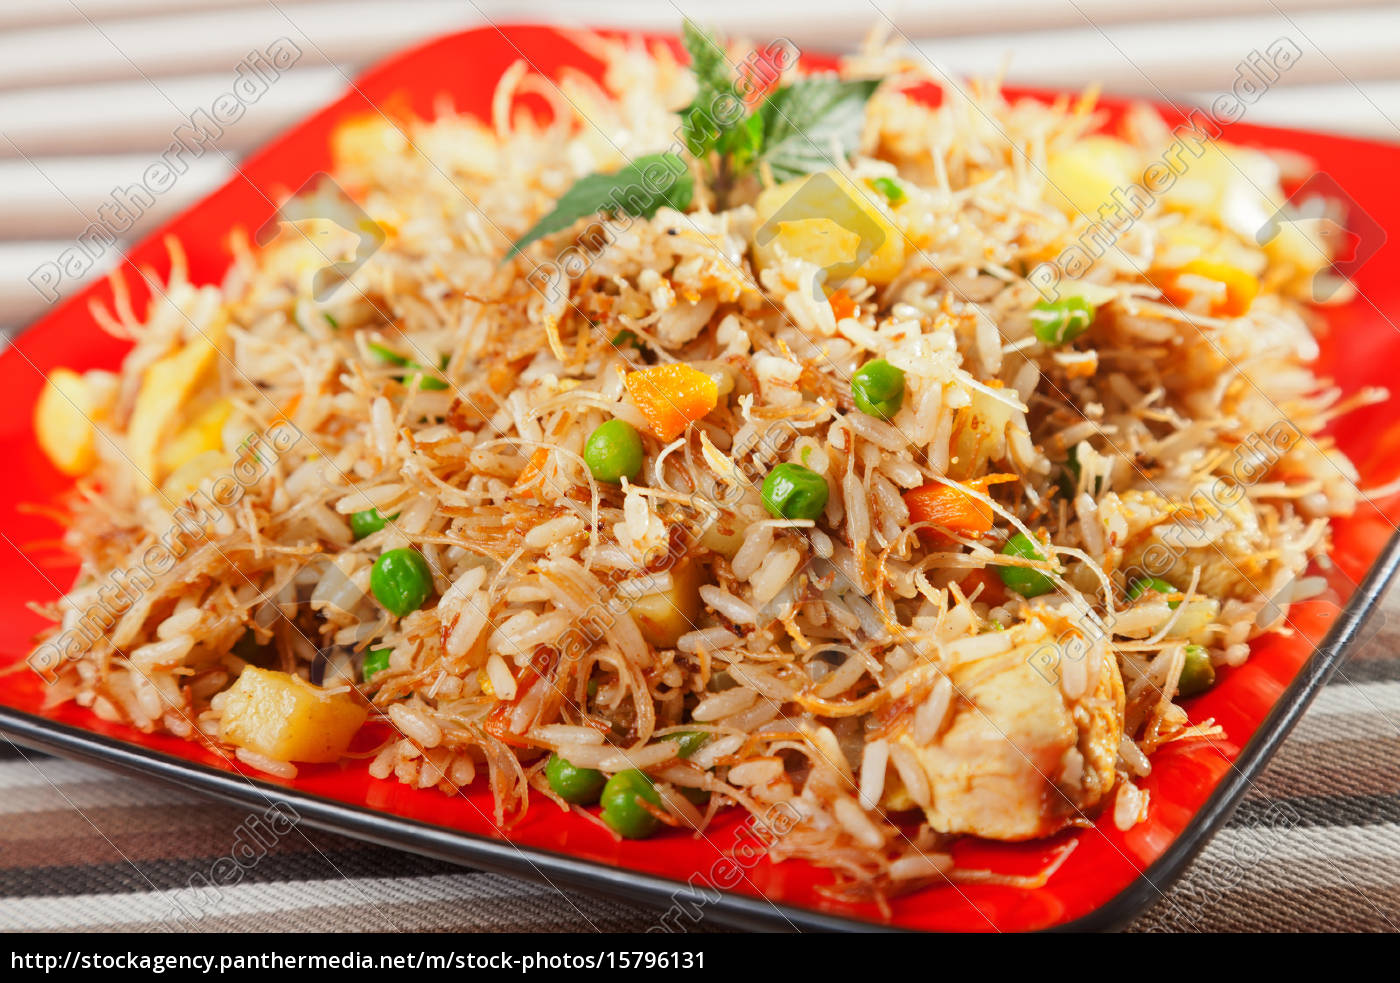 chicken, biryani, chicken, biryani - 15796131